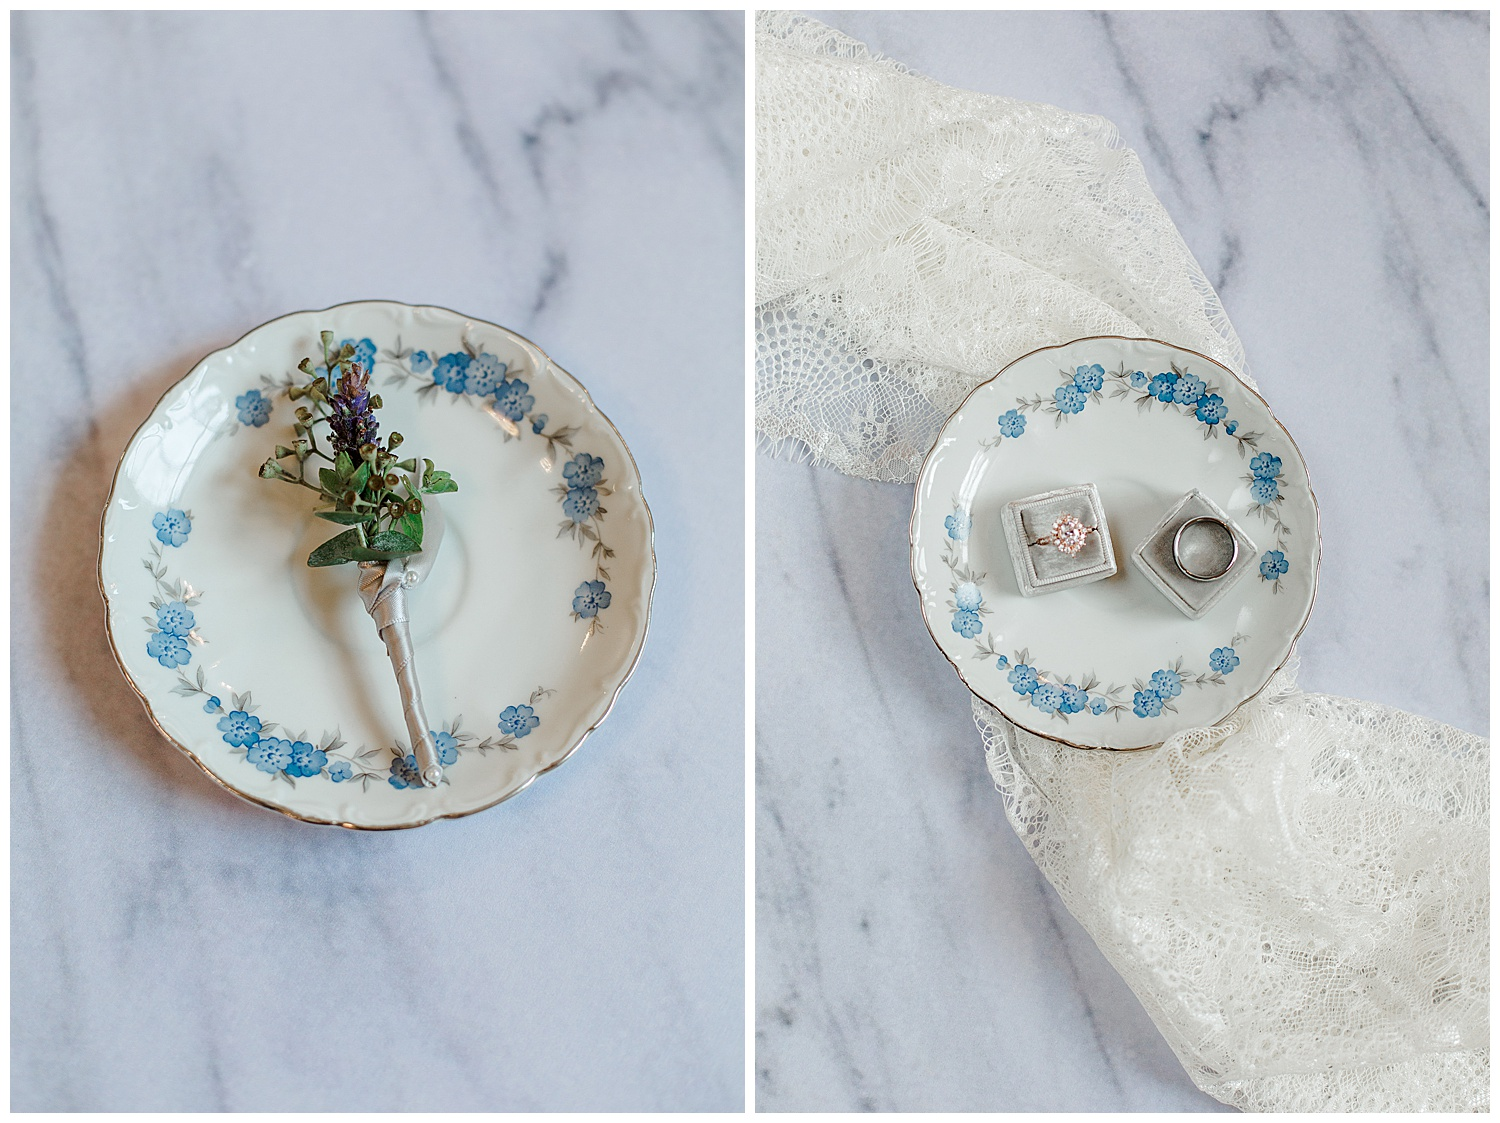 Lauren Baker Photography Events by Melody The Blaisdell styled wedding shoot